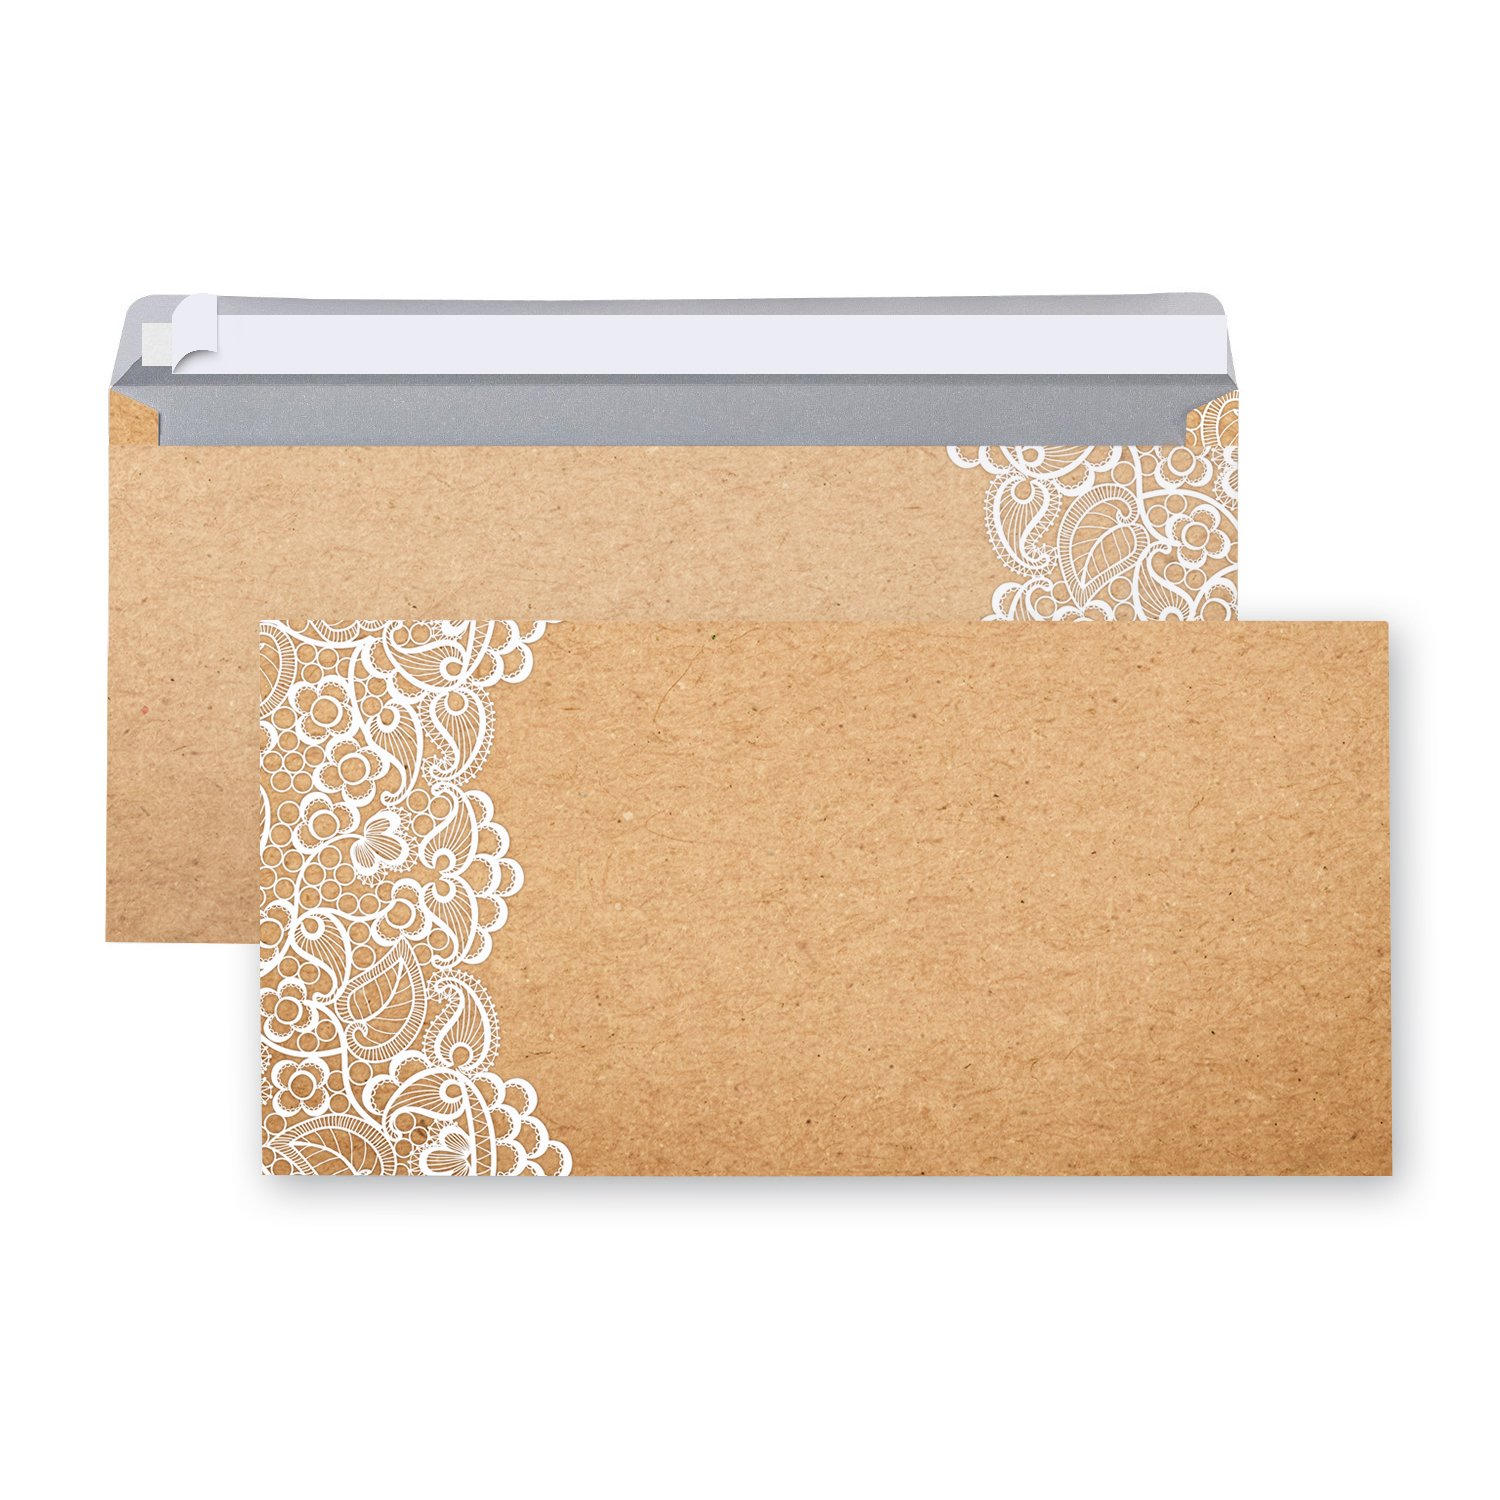 Pack of 100Envelopes Envelopes Brown/Beige Lace Vintage Aged Design Marbled Nostalgia Envelope DIN Long 22x 11cm with Adhesive Strips Rustic Antique Festive Stainless Jeanette Dietl